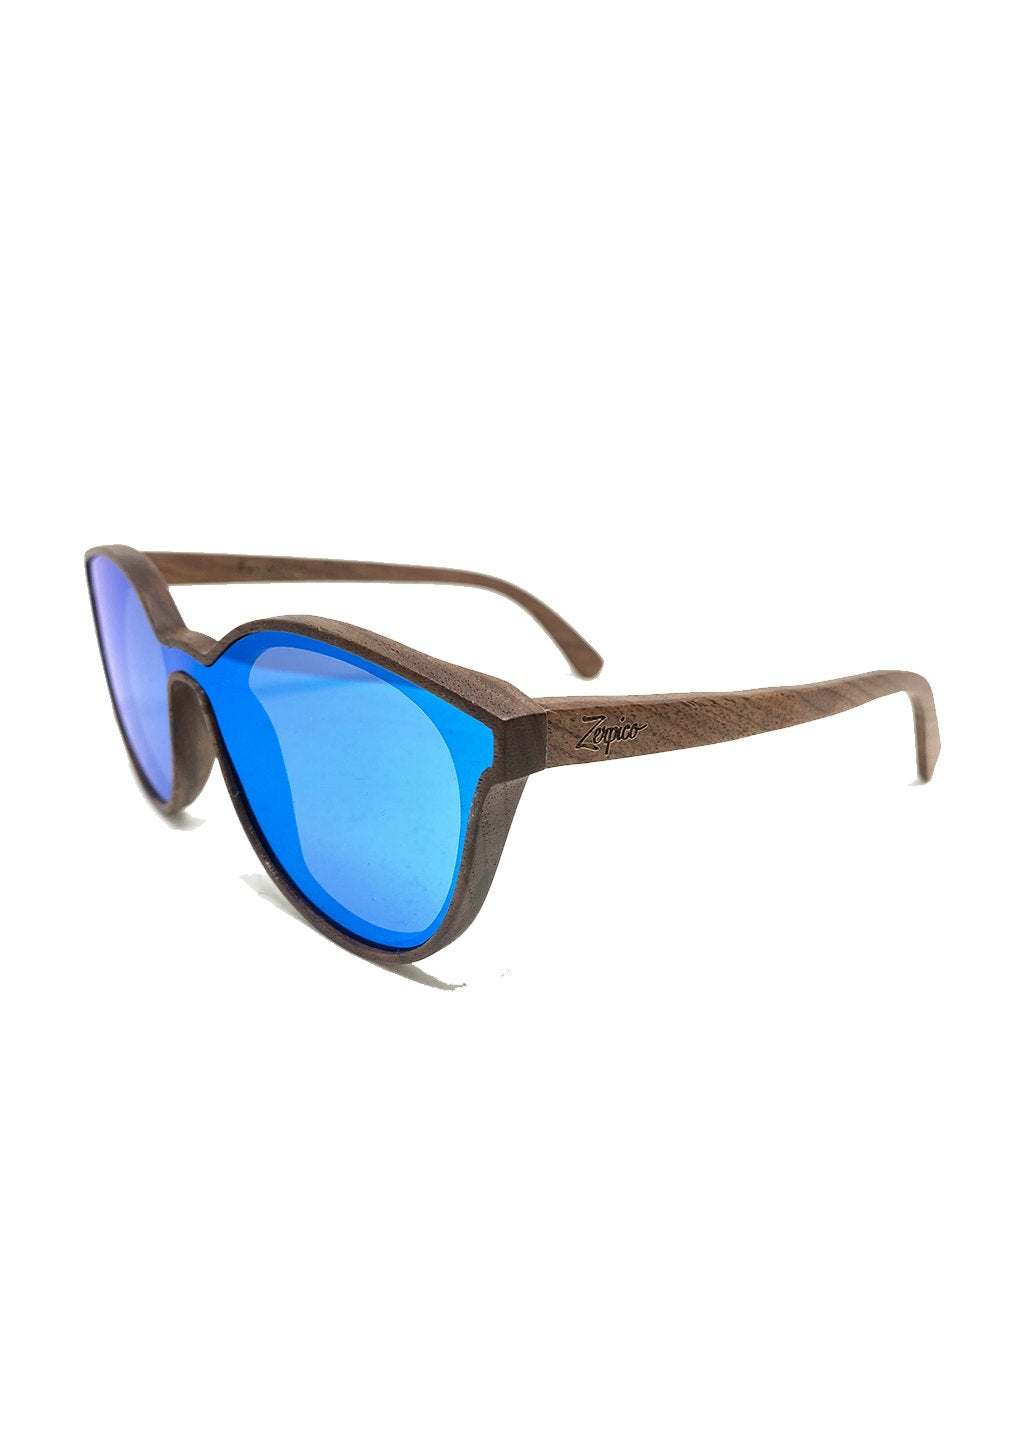 Eco friendly - Women Sunglasses Eyewood - Savannah - FREE SHIPPING